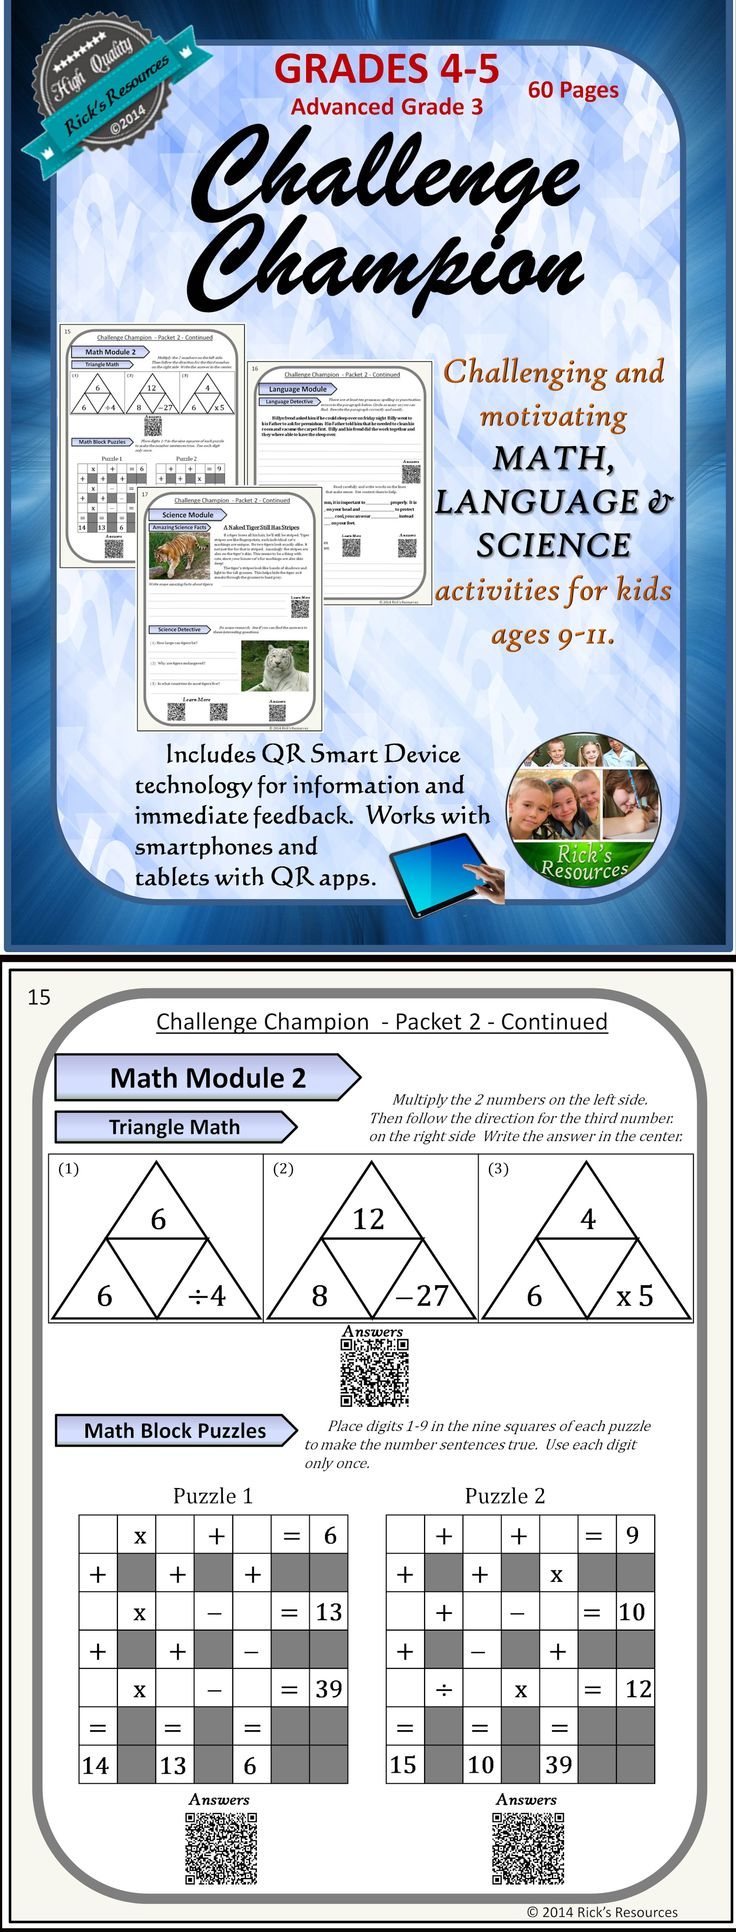 17 Best images about Fourth Grade on Pinterest | The smart ...